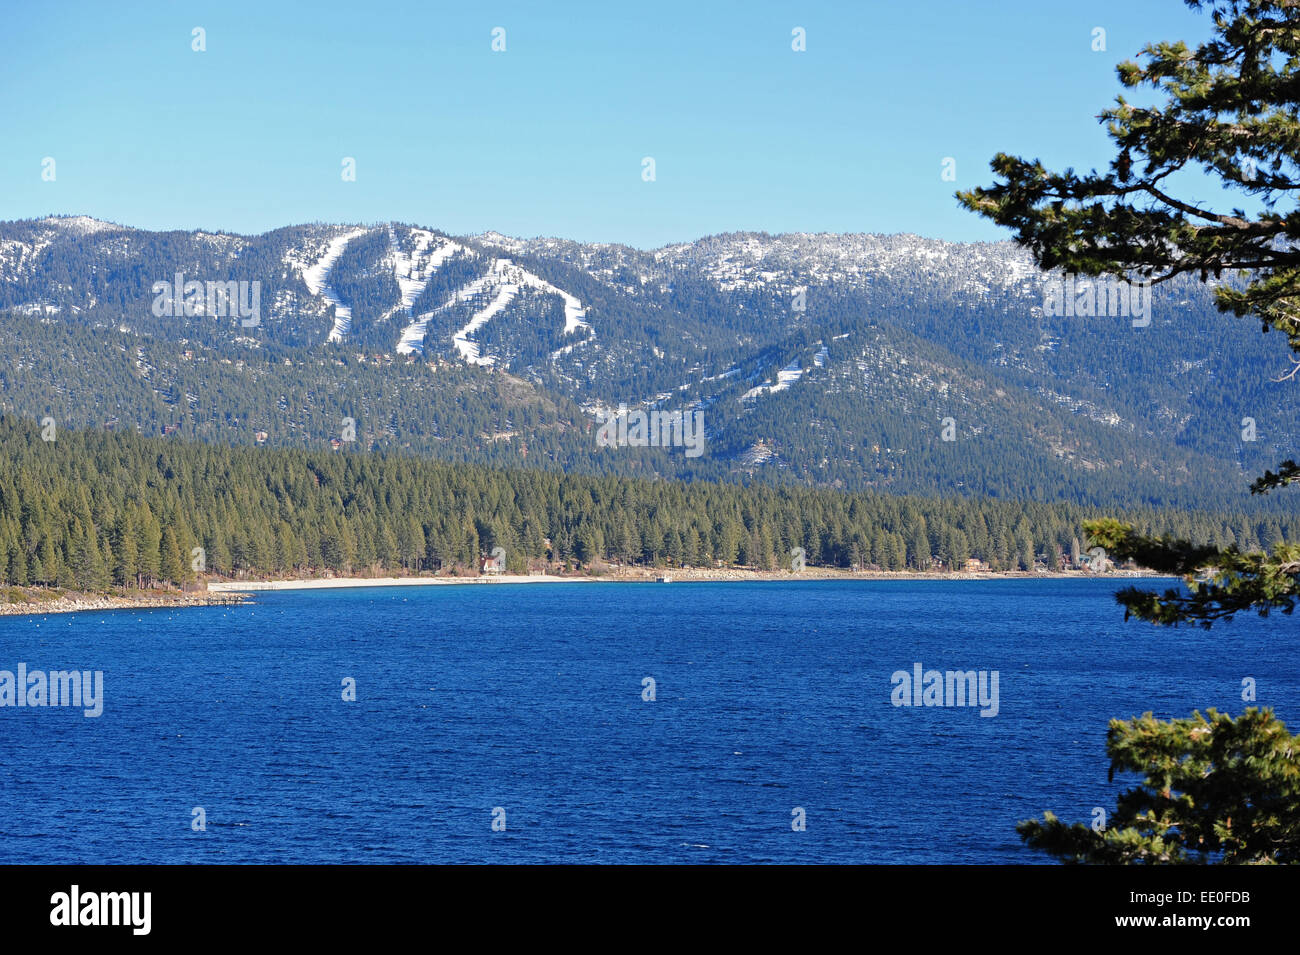 usa-nevada-nv-lake-tahoe-winter-view-of-